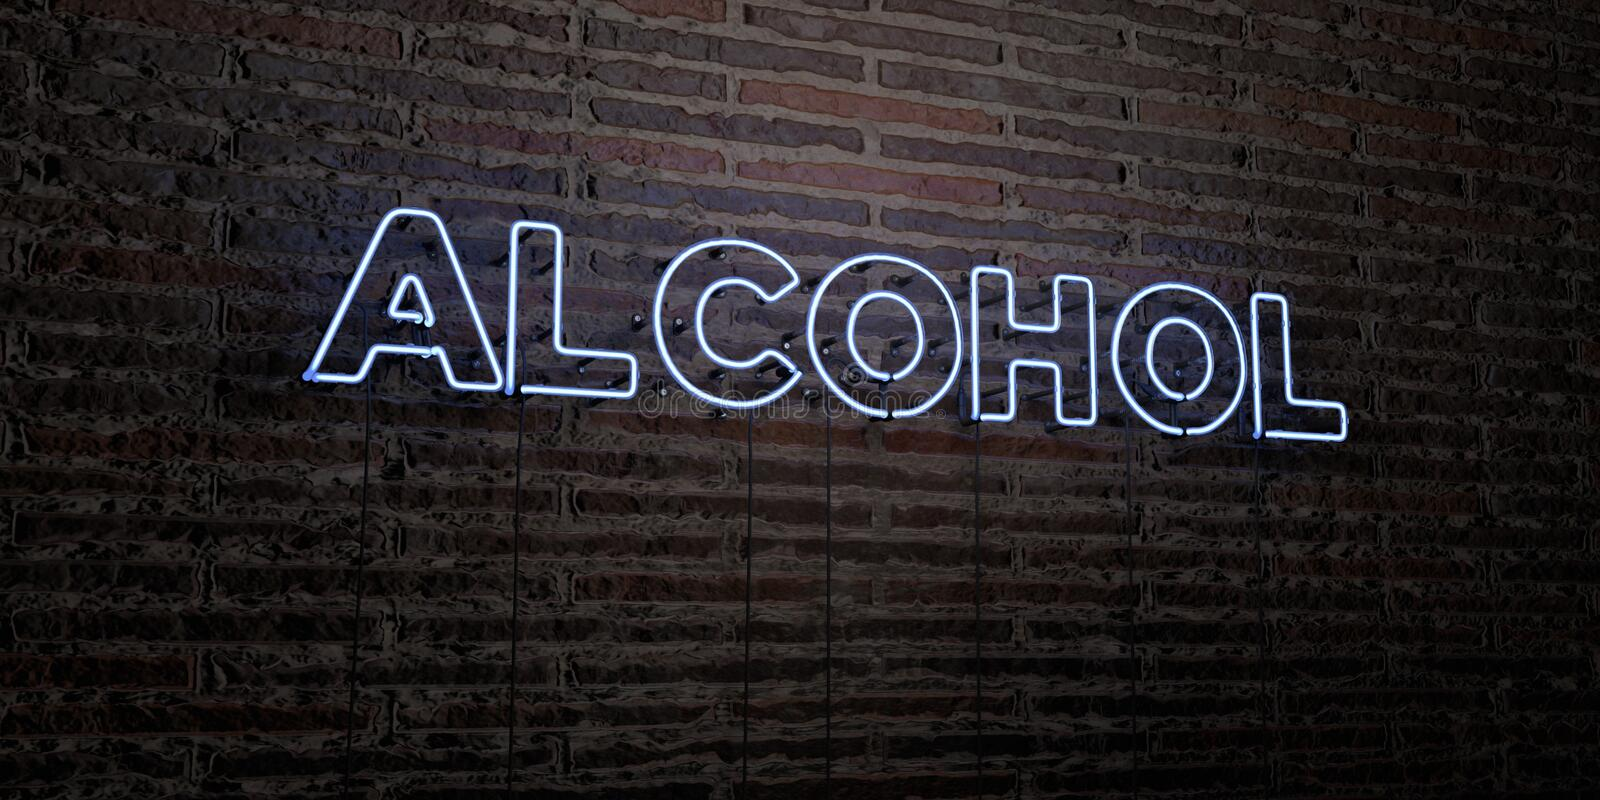 ALCOHOL -Realistic Neon Sign on Brick Wall background - 3D rendered royalty free stock image royalty free illustration